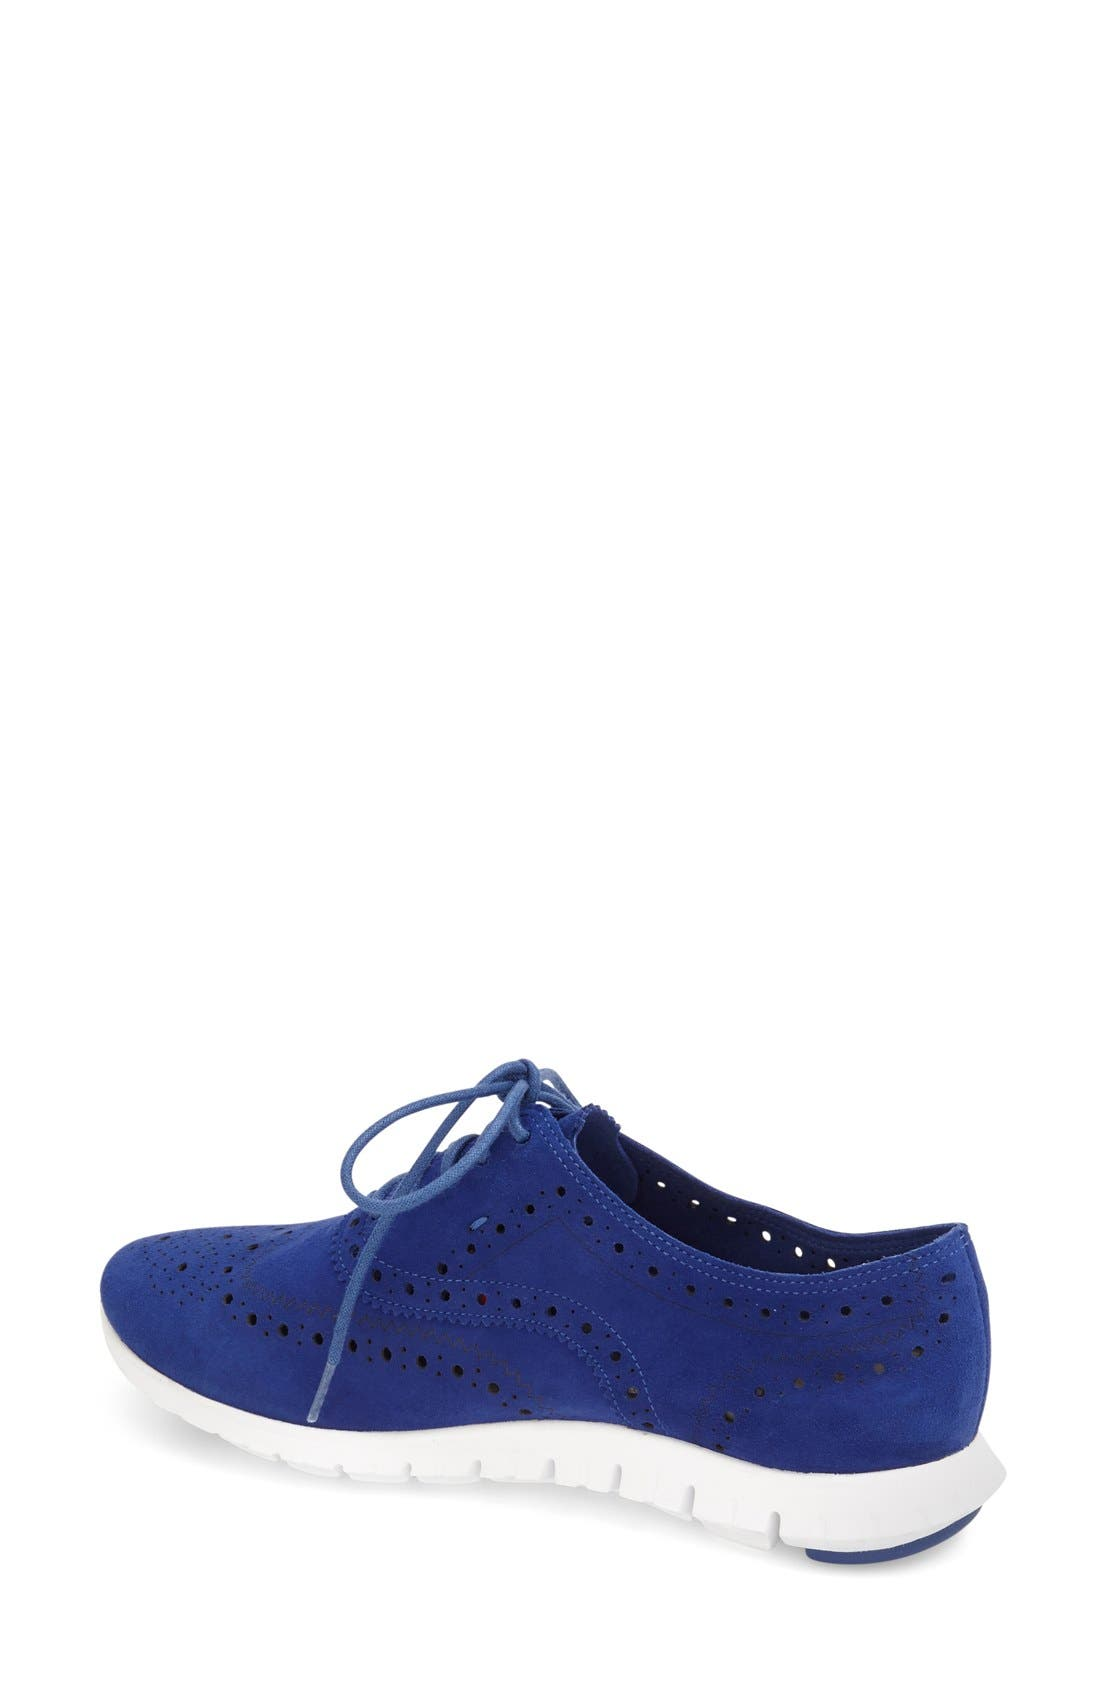 'ZeroGrand' Perforated Wingtip,                             Alternate thumbnail 49, color,